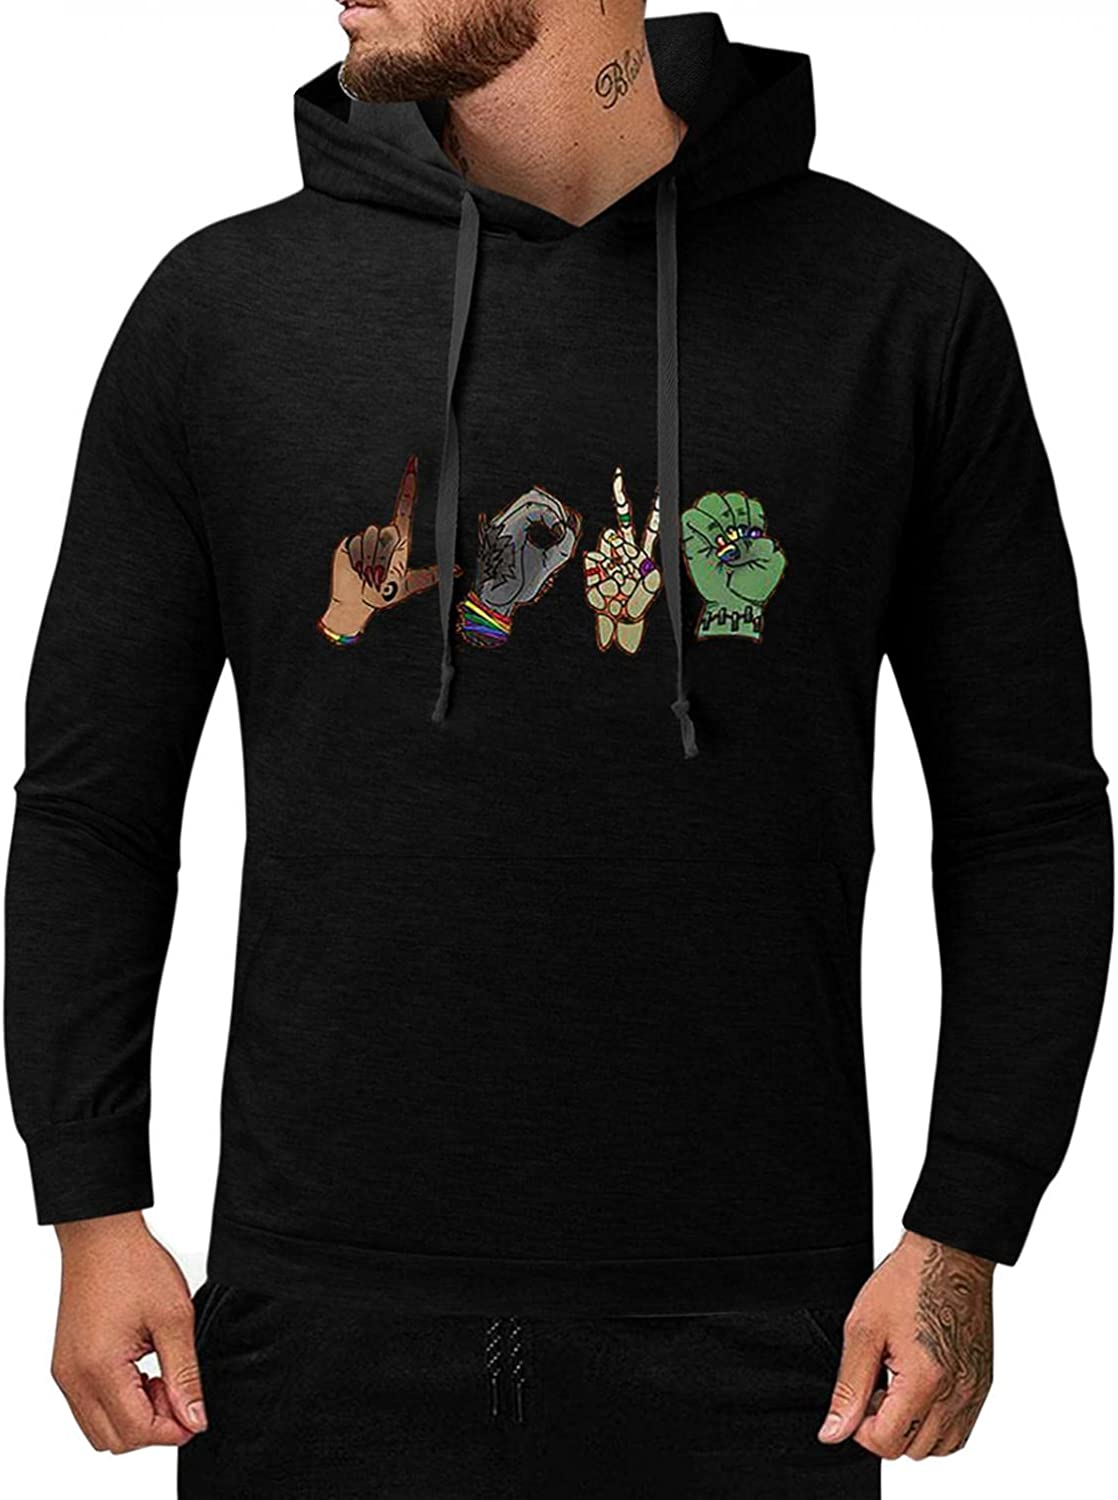 Men's Sweatshirts Graphic Funny Luxury goods Hooded L Solid Max 63% OFF Print